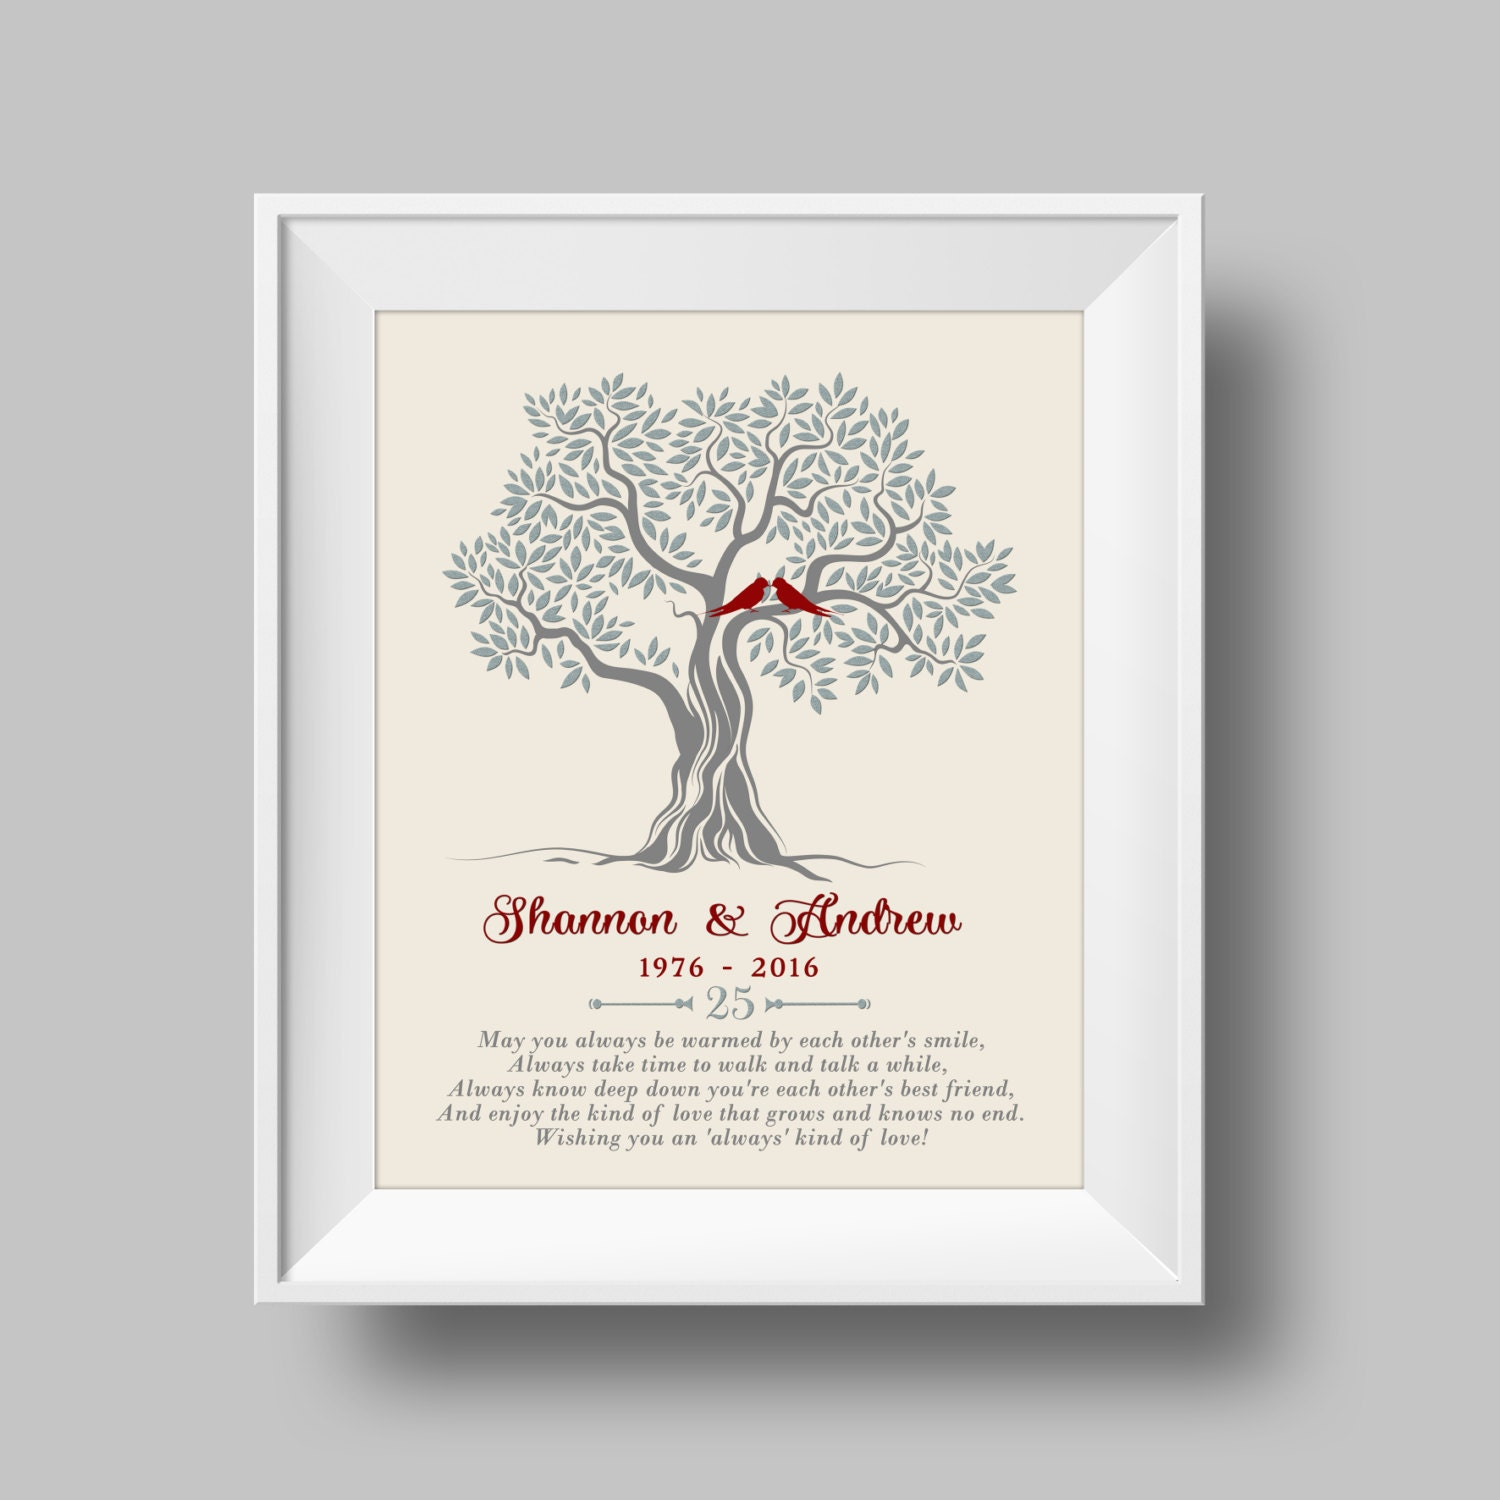 Gifts For Him For 25th Wedding Anniversary: 25th Anniversary Gift For Parents 25th Wedding Anniversary